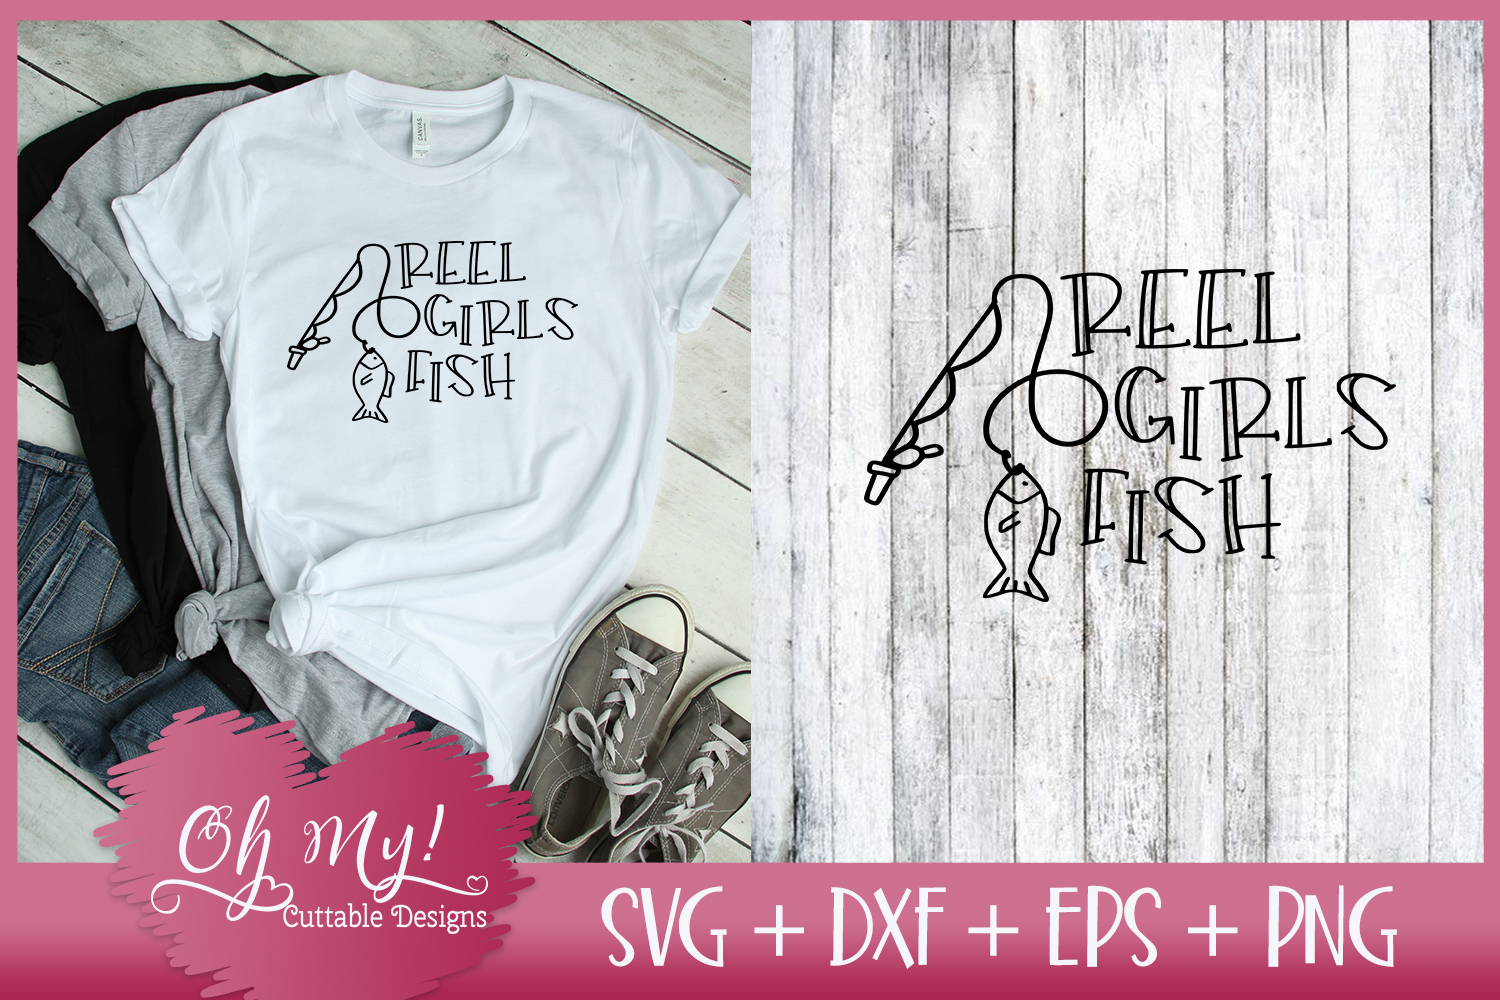 Reel Girls Fish - SVG DXF EPS PNG Cutting File example image 1